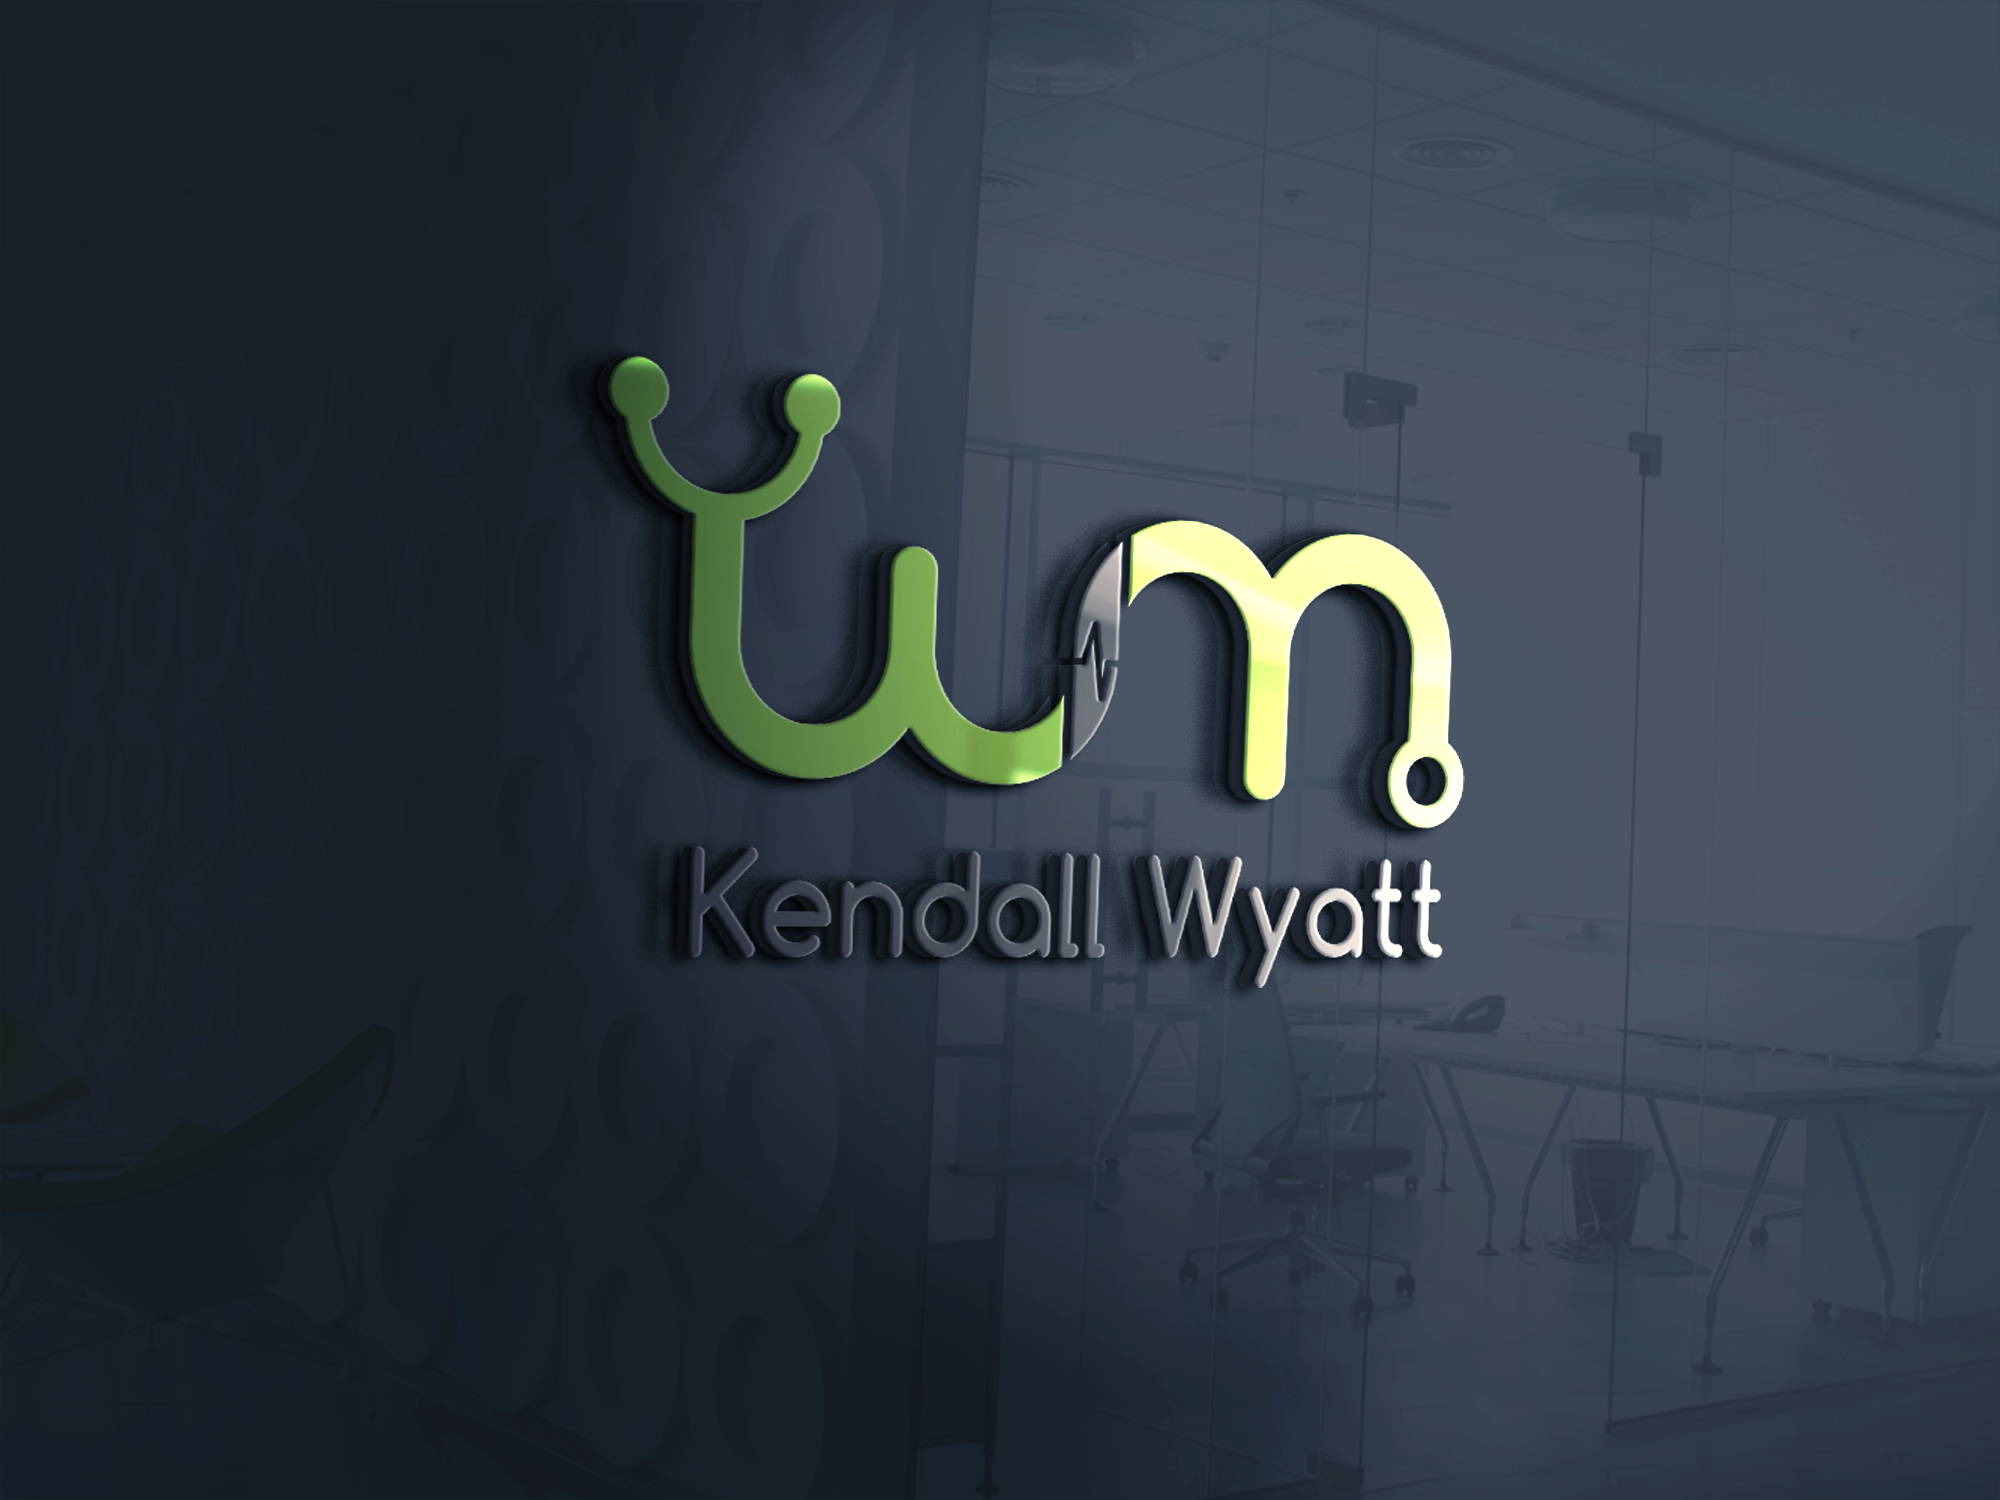 Welcome to Kendall Wyatt.com